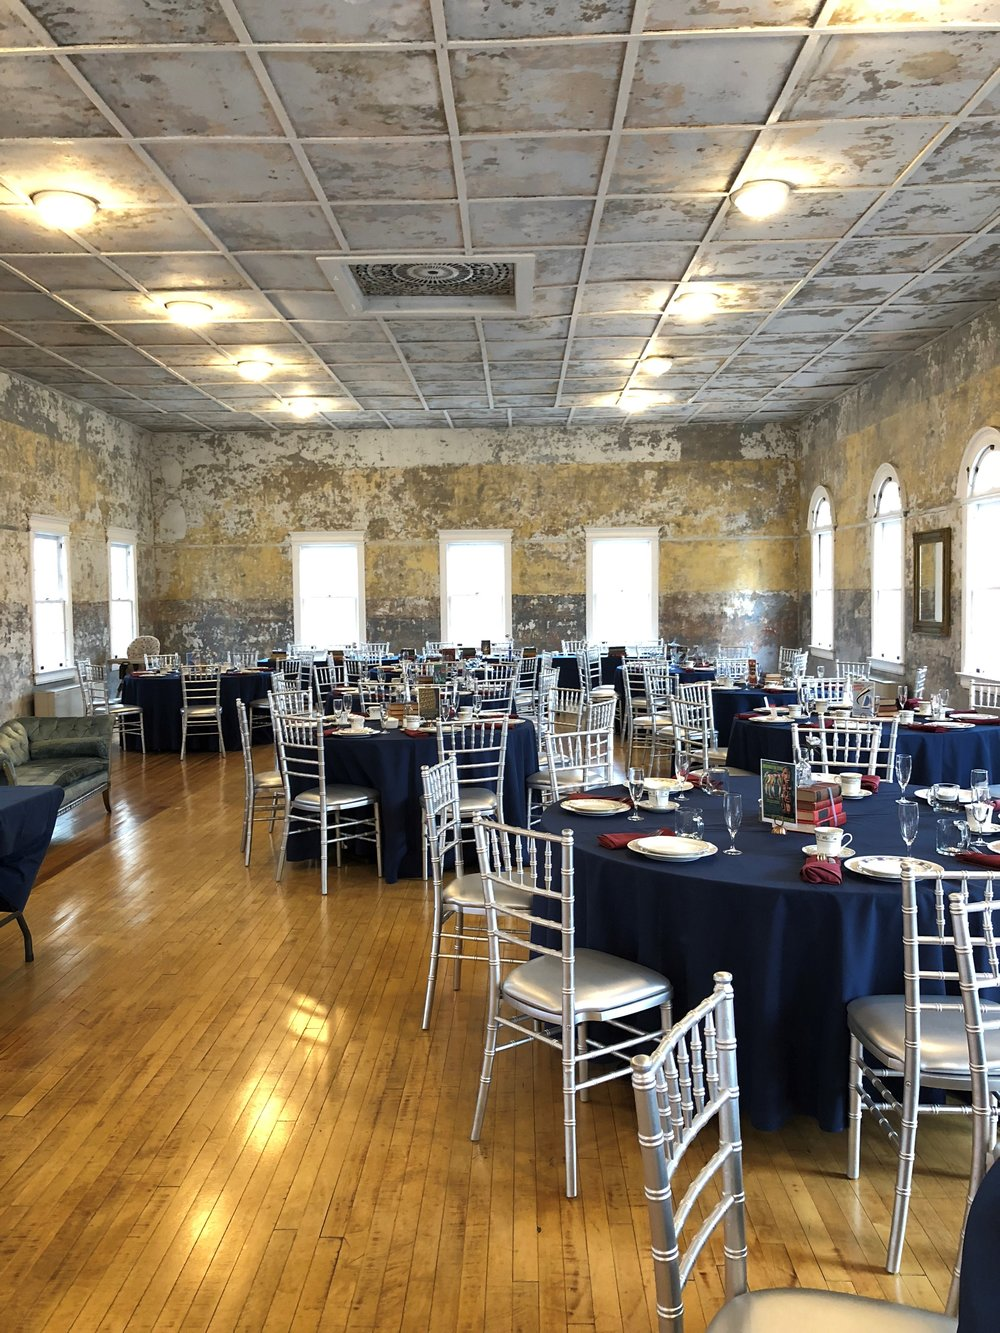 01.27.2018 Veety McGuire Wdg The Hall at Castle Inn Final Tablescape 2.jpg